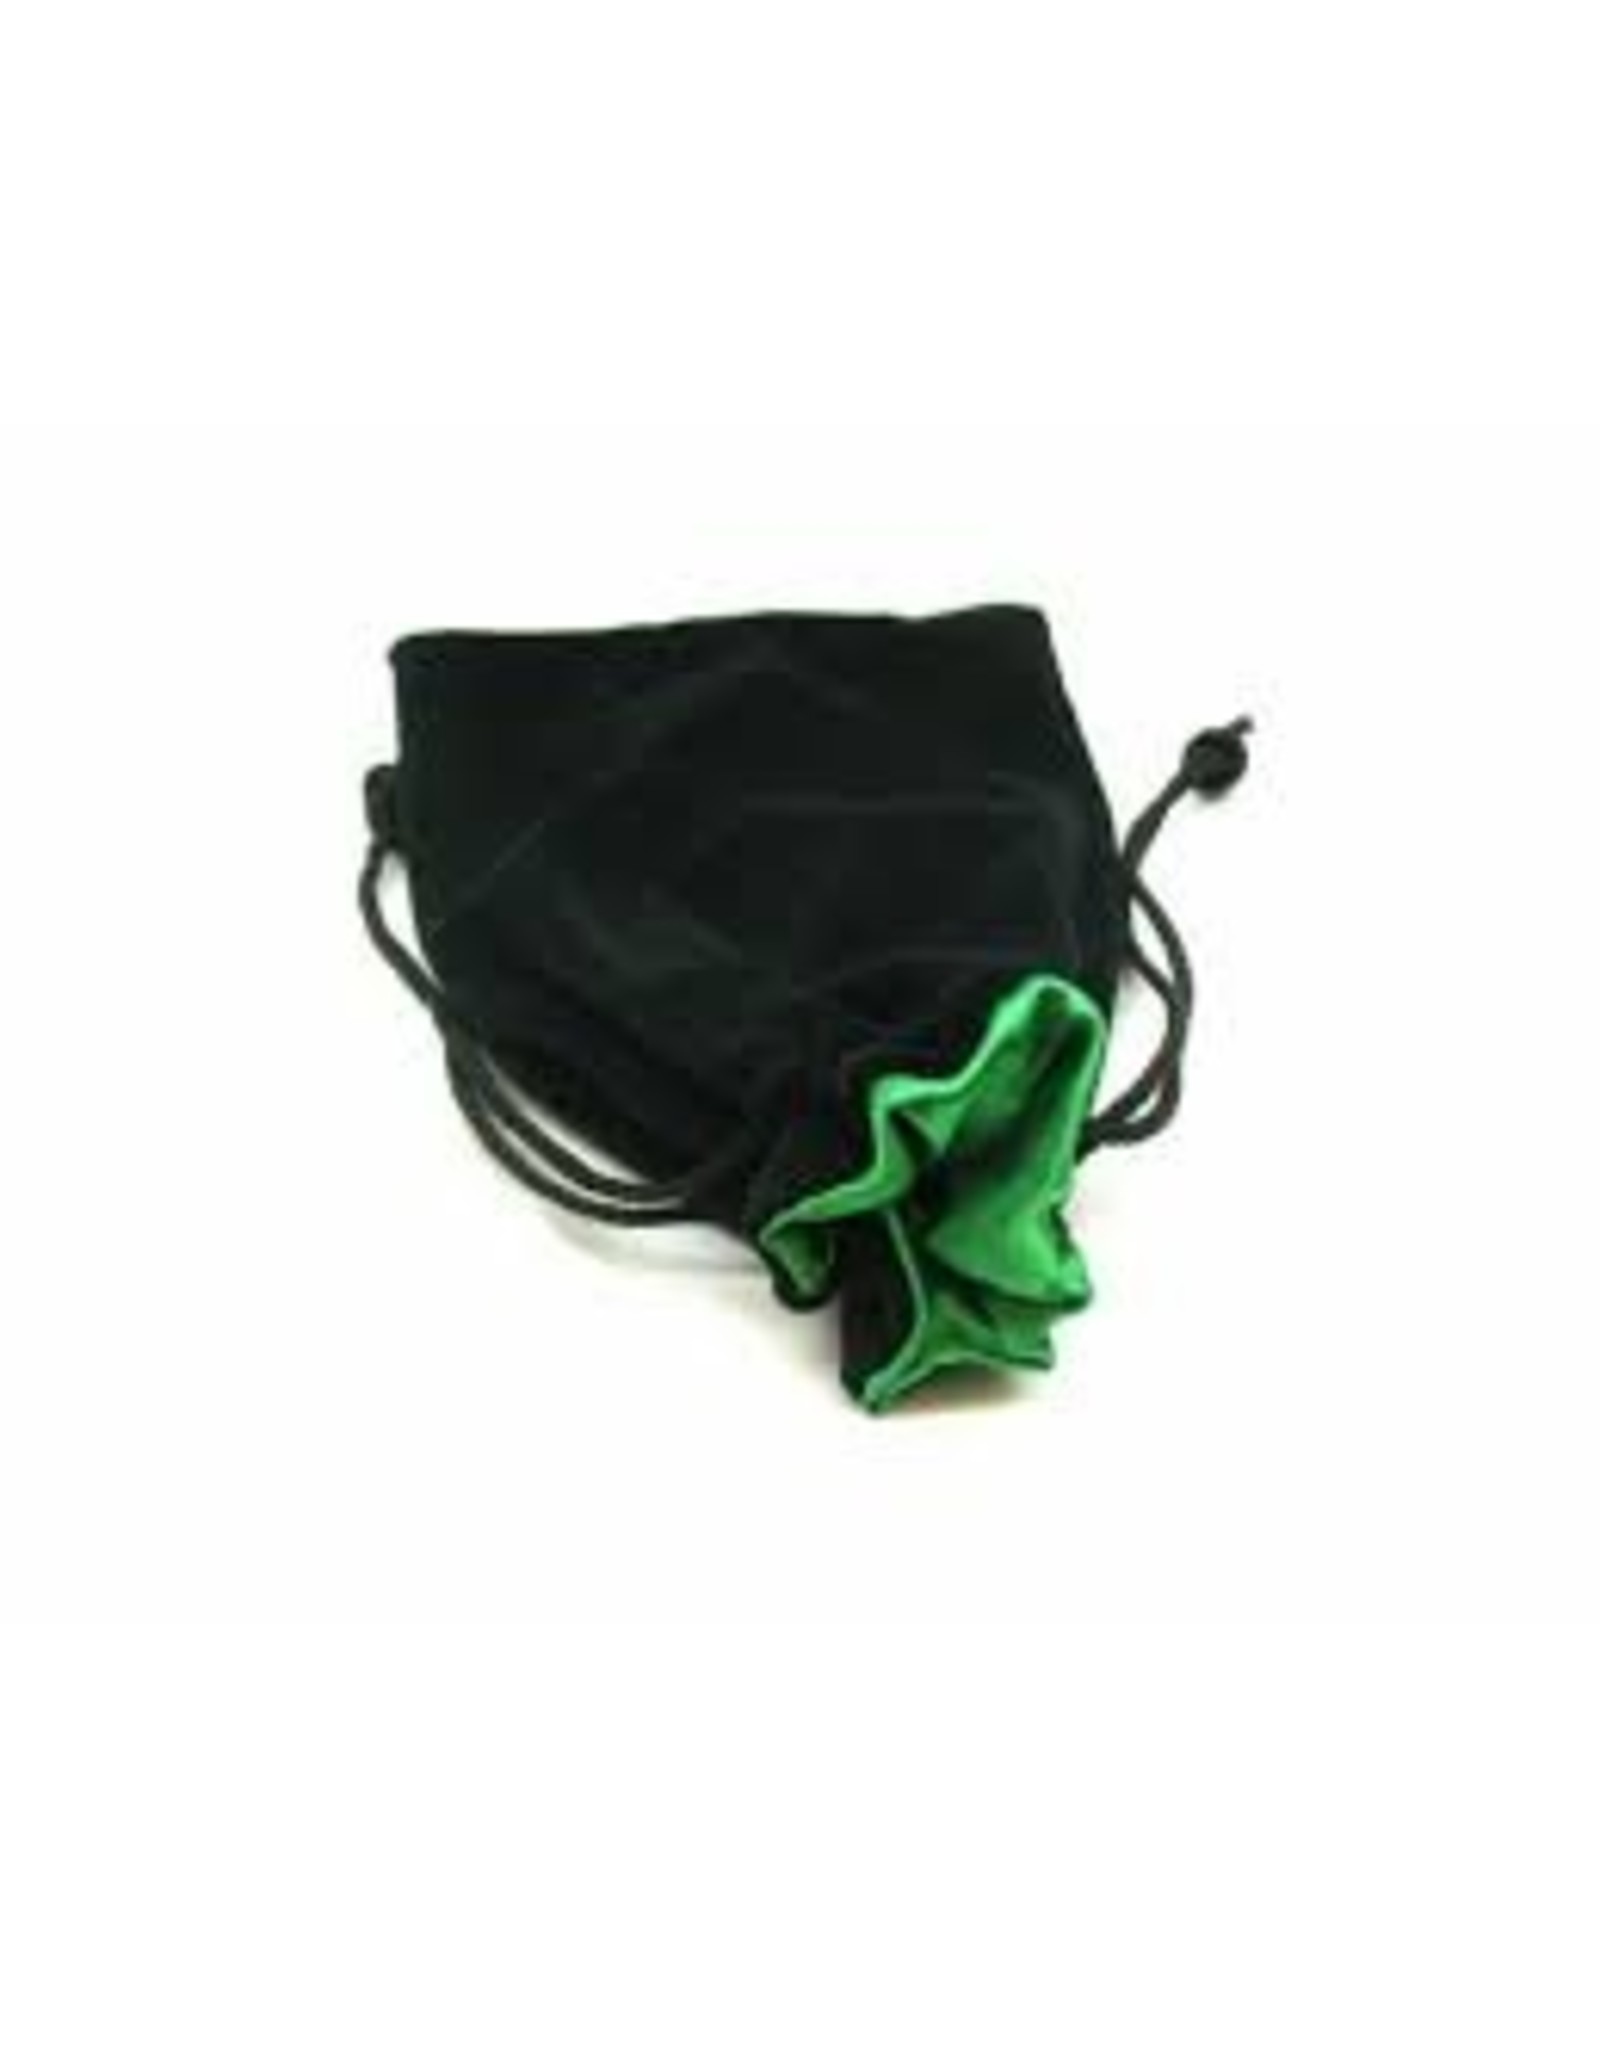 Dice LG Lined Dice Bag GR